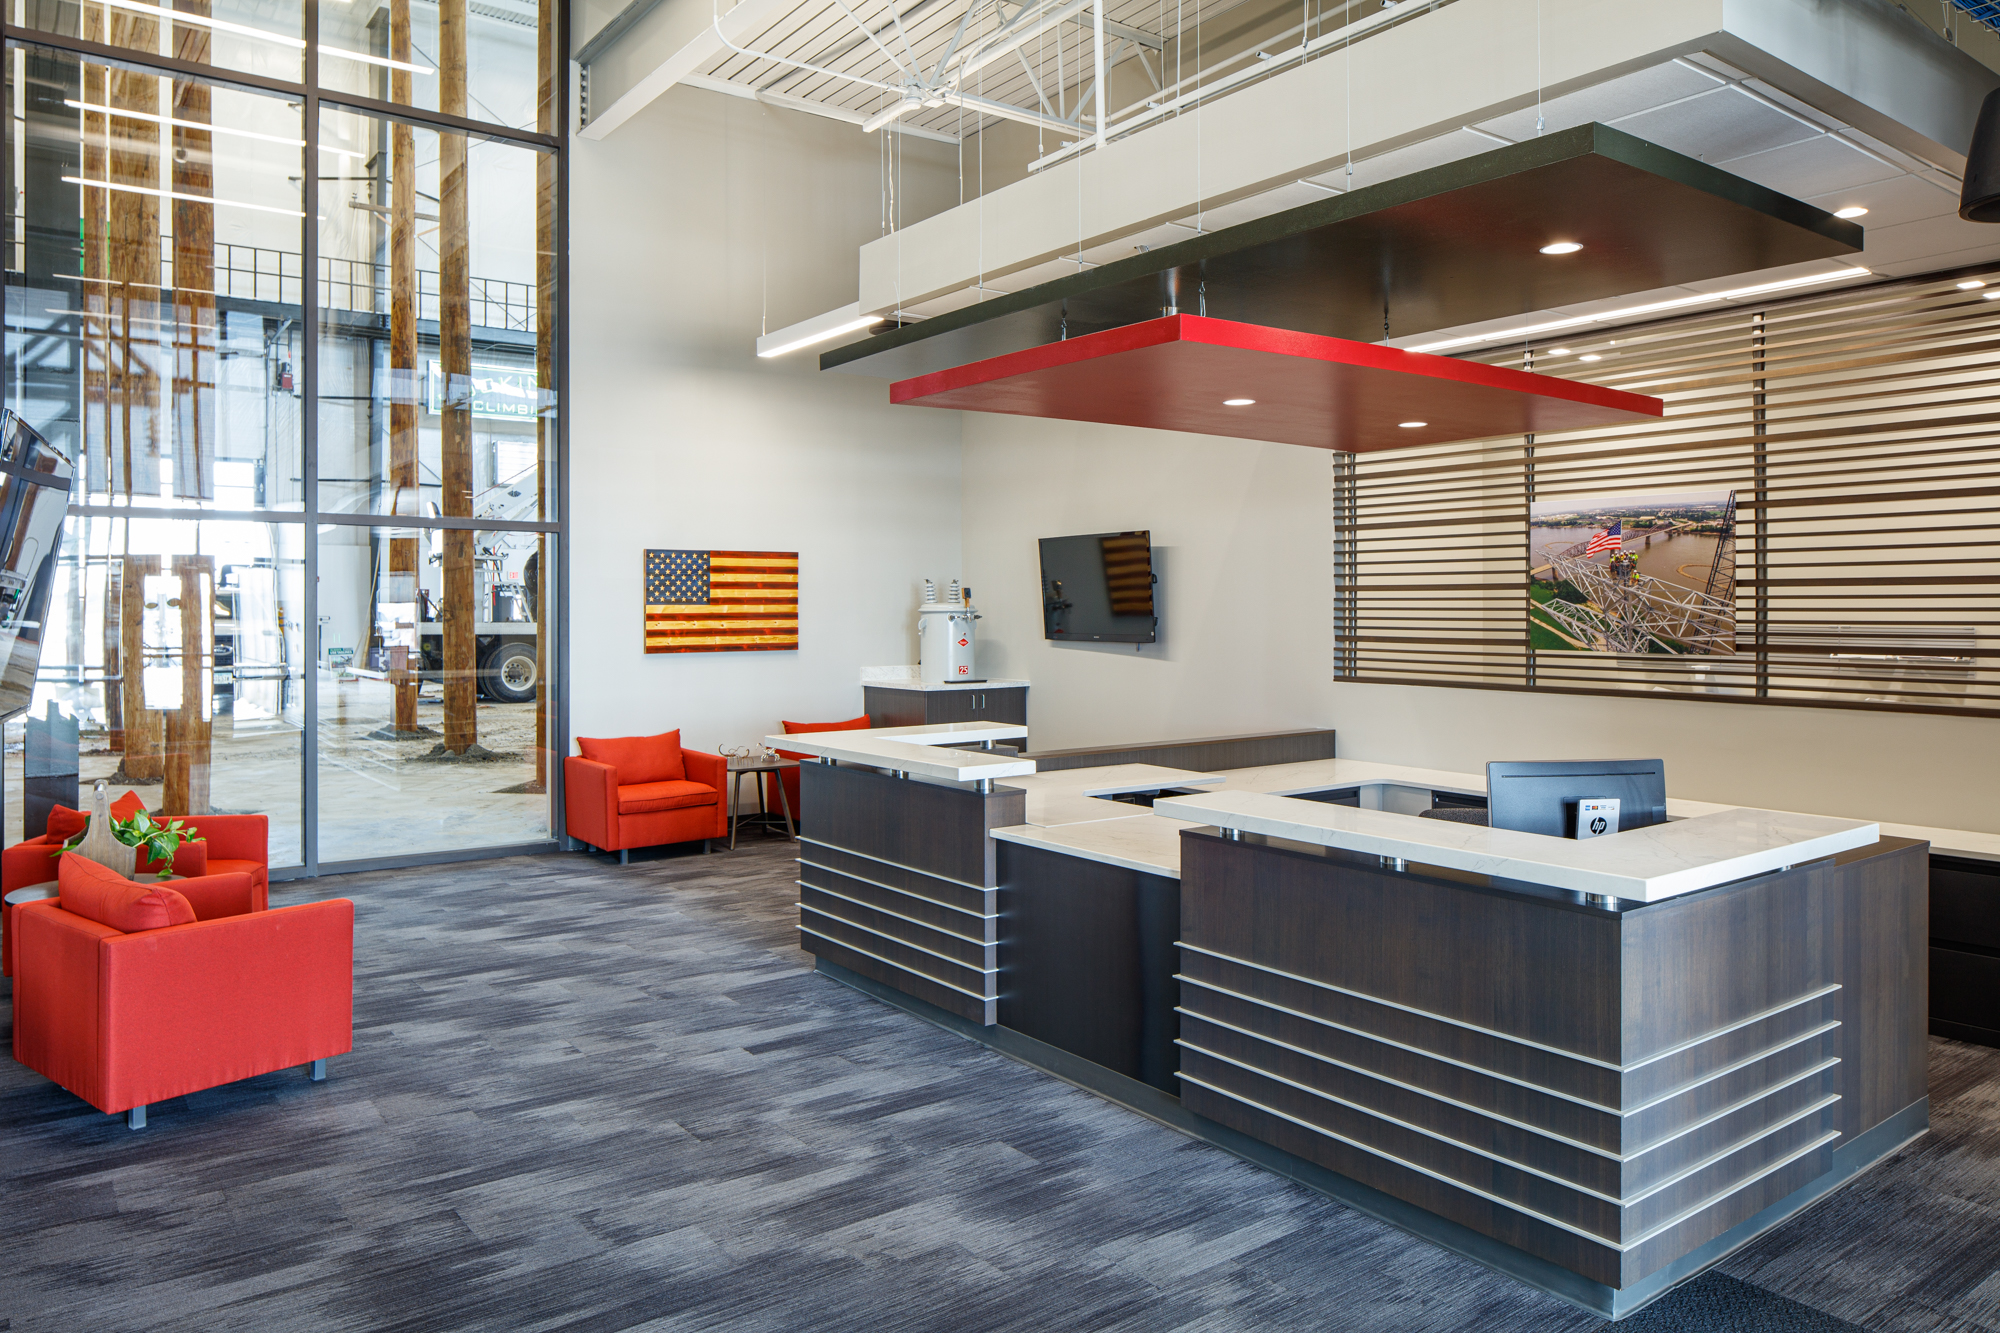 Interior grey carpet with red furniture (individual chairs) and red hanging light feature. Handcrafted slate grey desk with white walls and floor to ceiling window viewing into the interior pole yard.